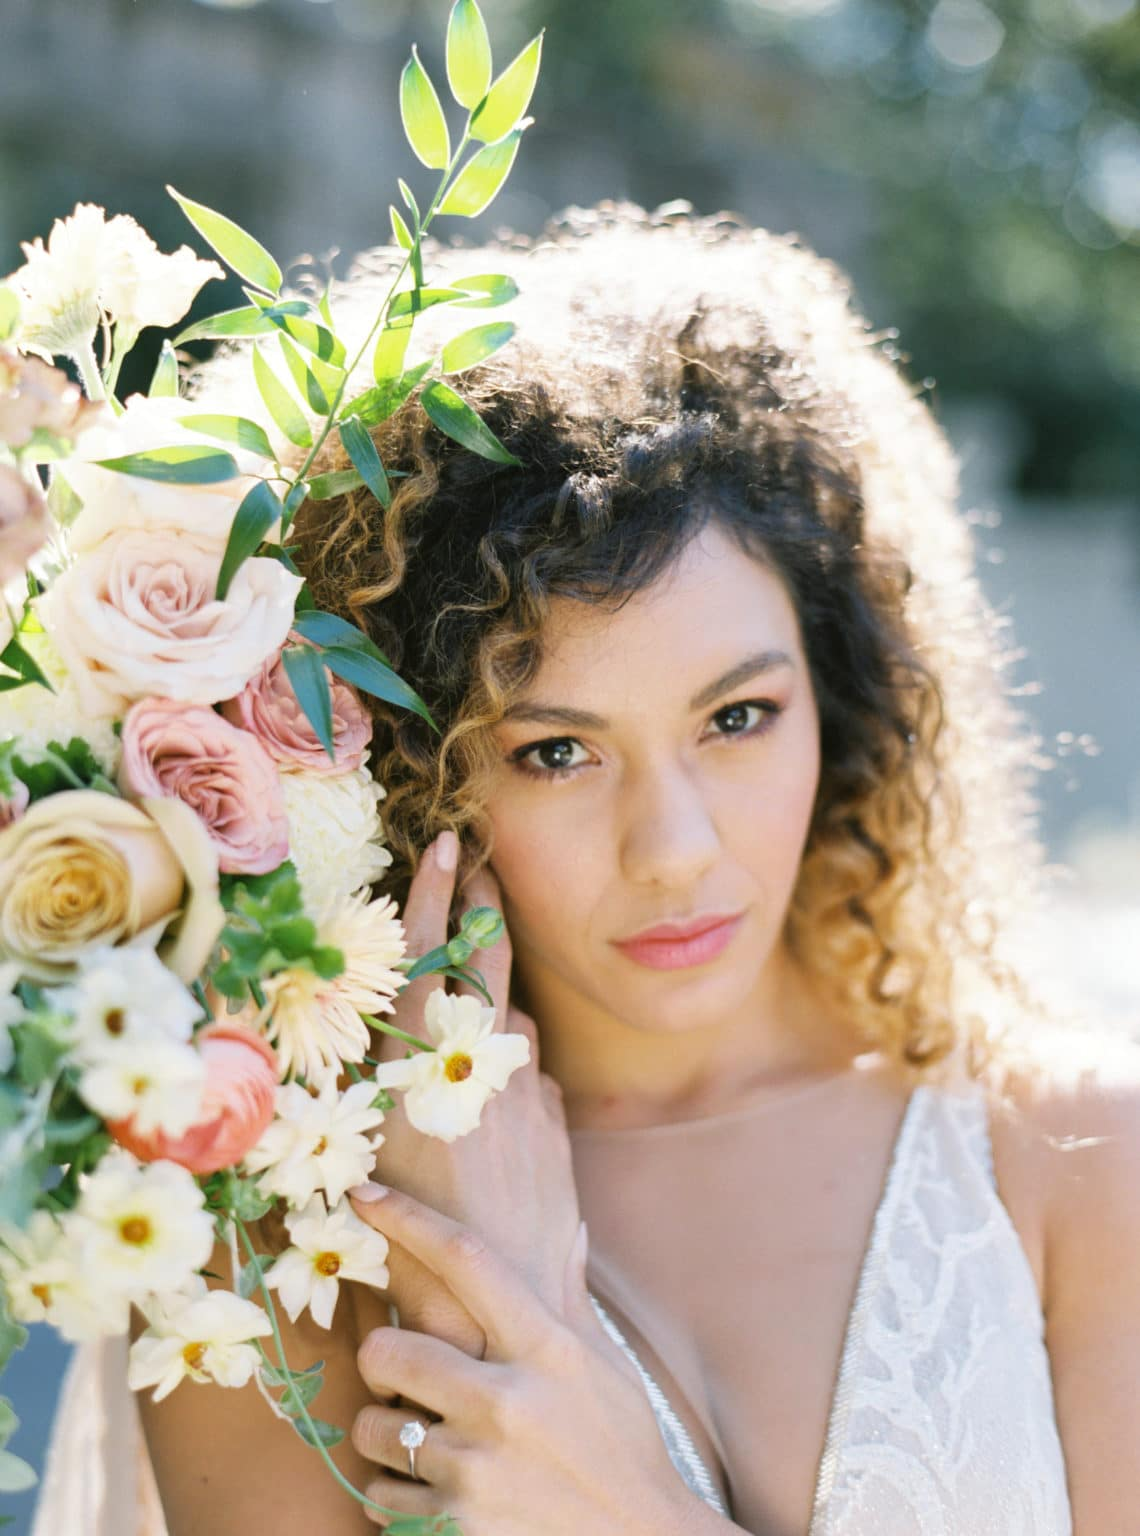 Close-up of Bride and bouquet at Atlanta's Historical Swan House